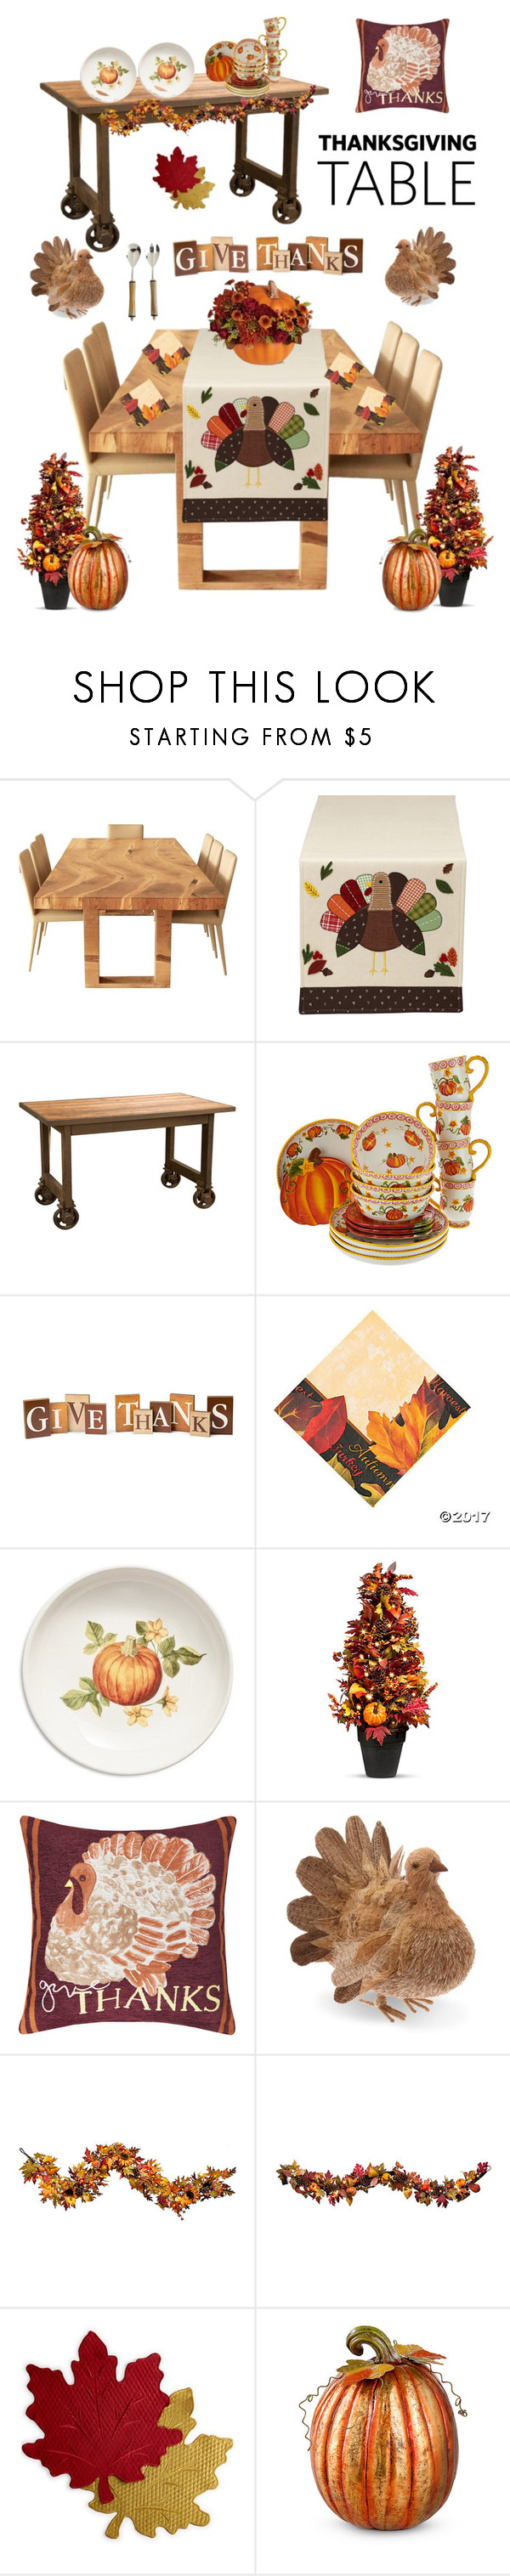 600x3032 Thanksgiving Table By Kotnourka Liked On Polyvore Featuring